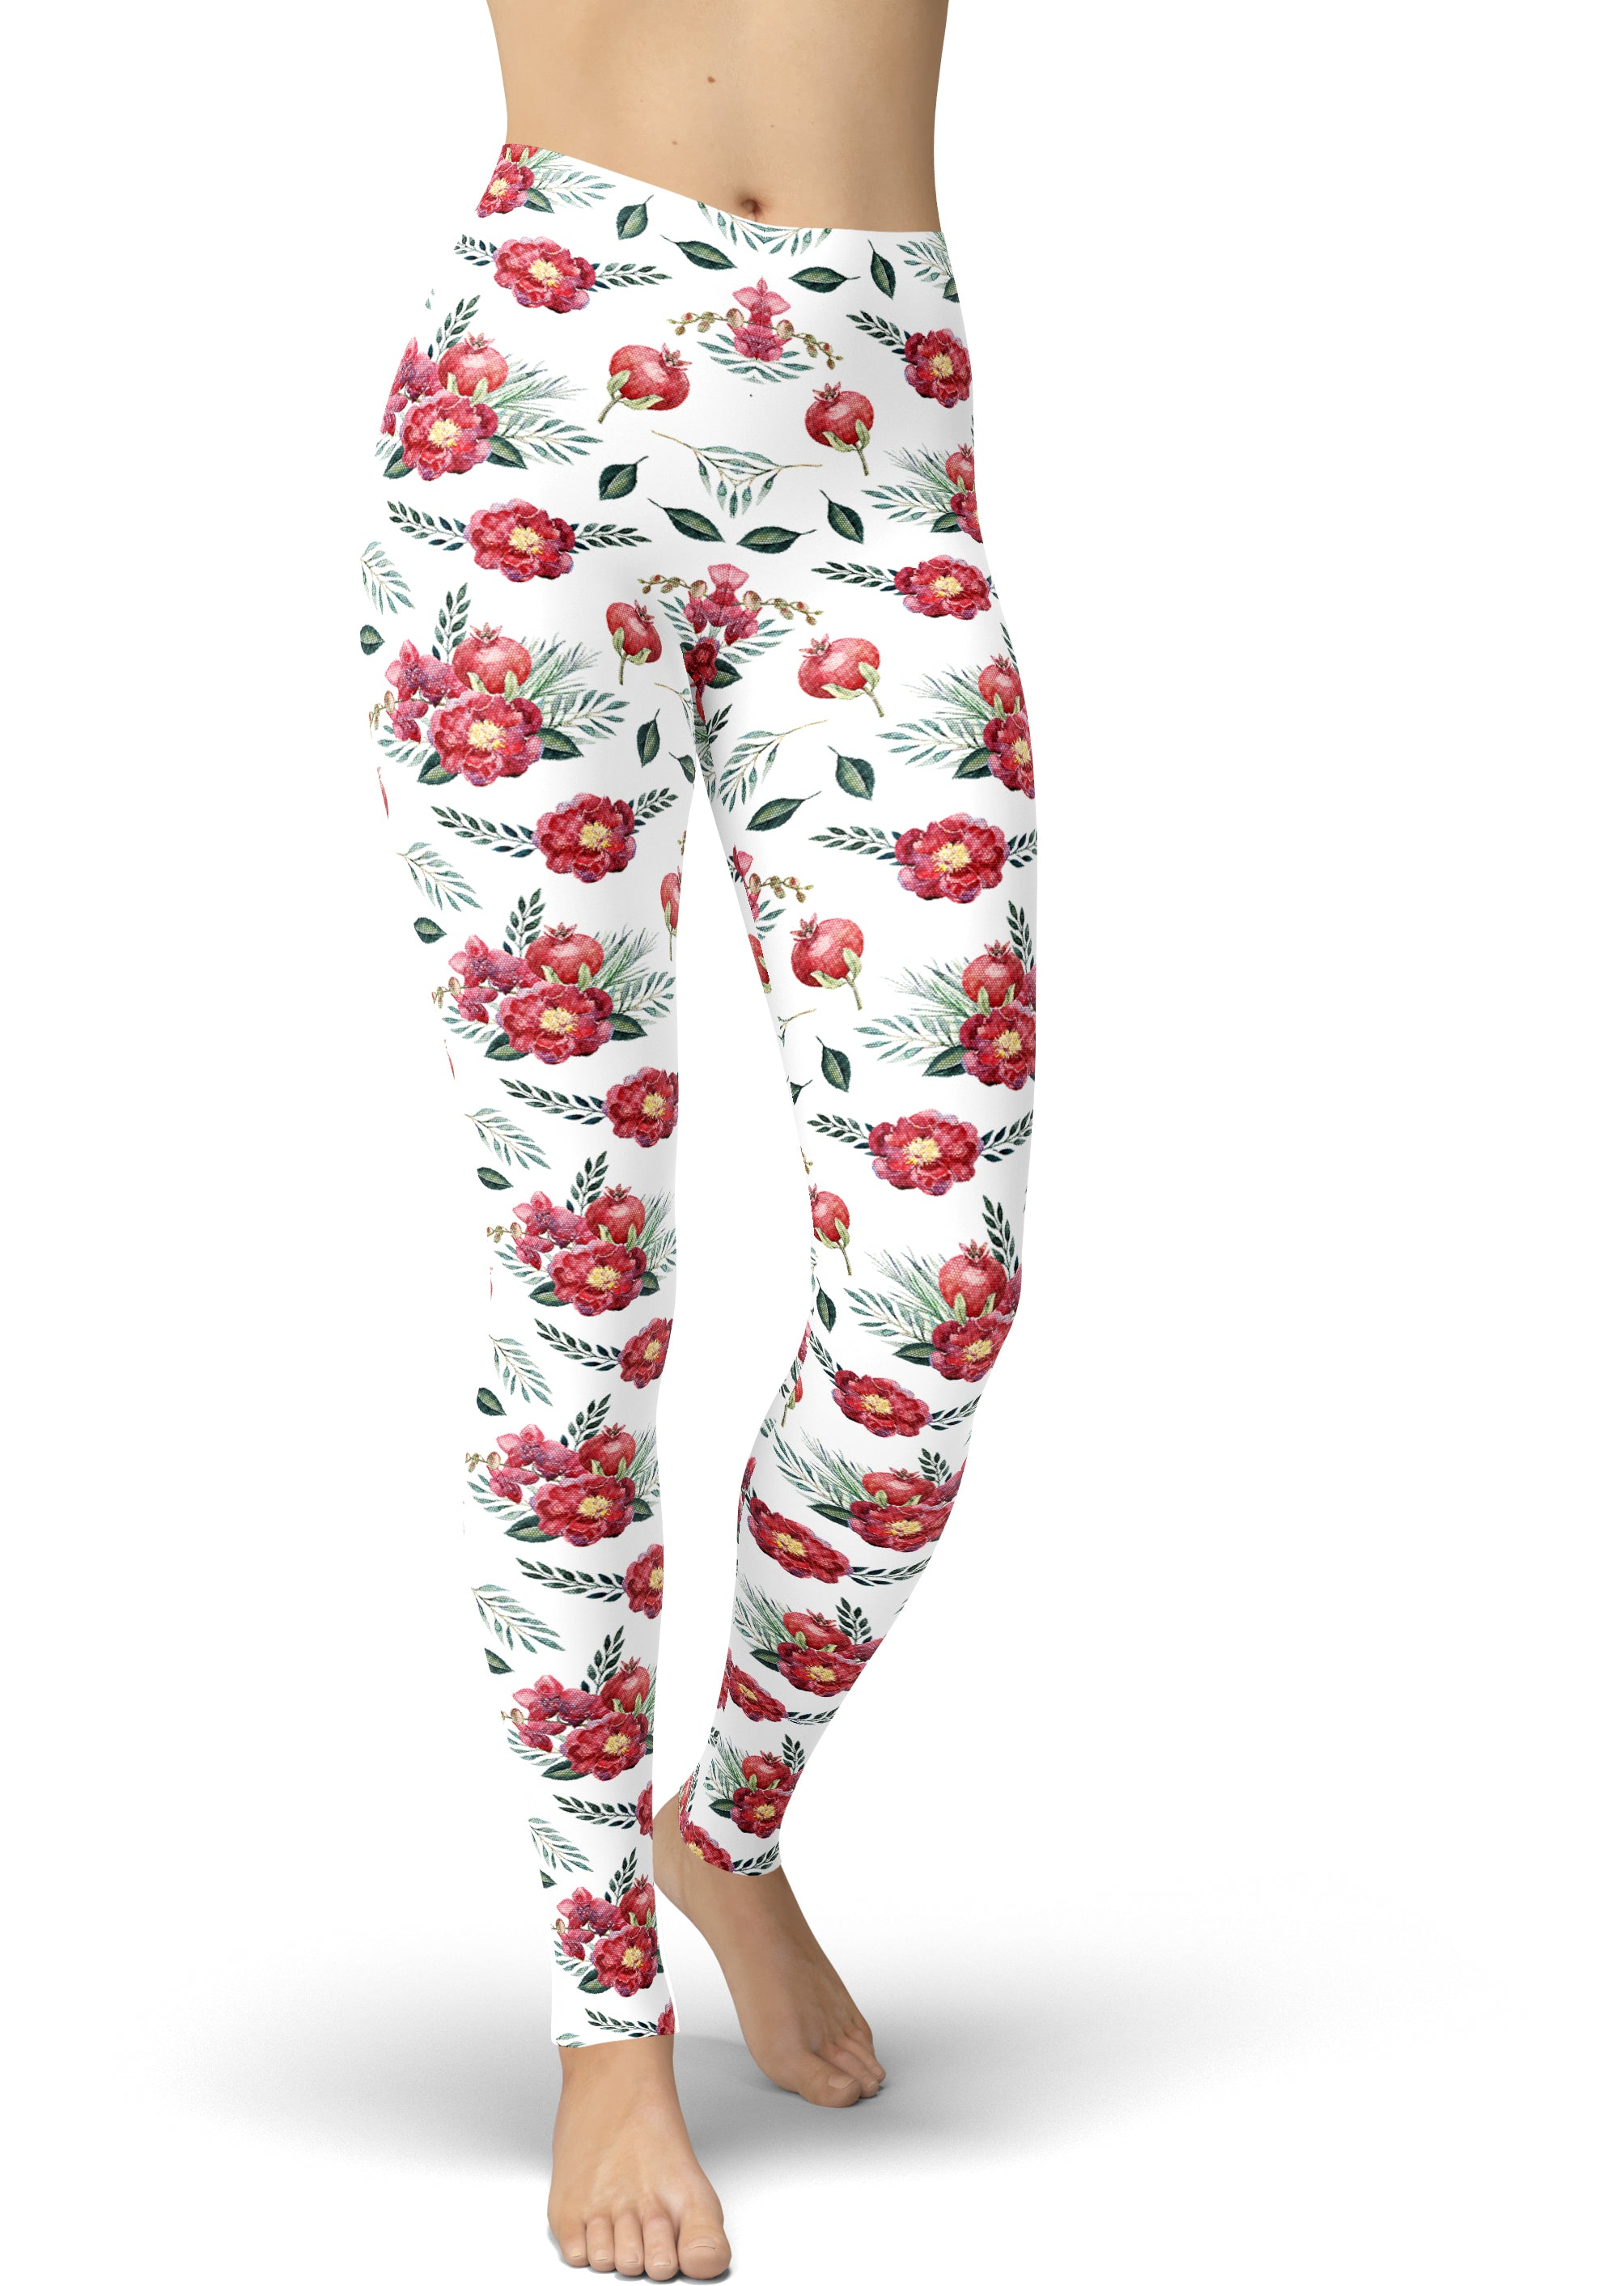 Persephone Avenue Leggings